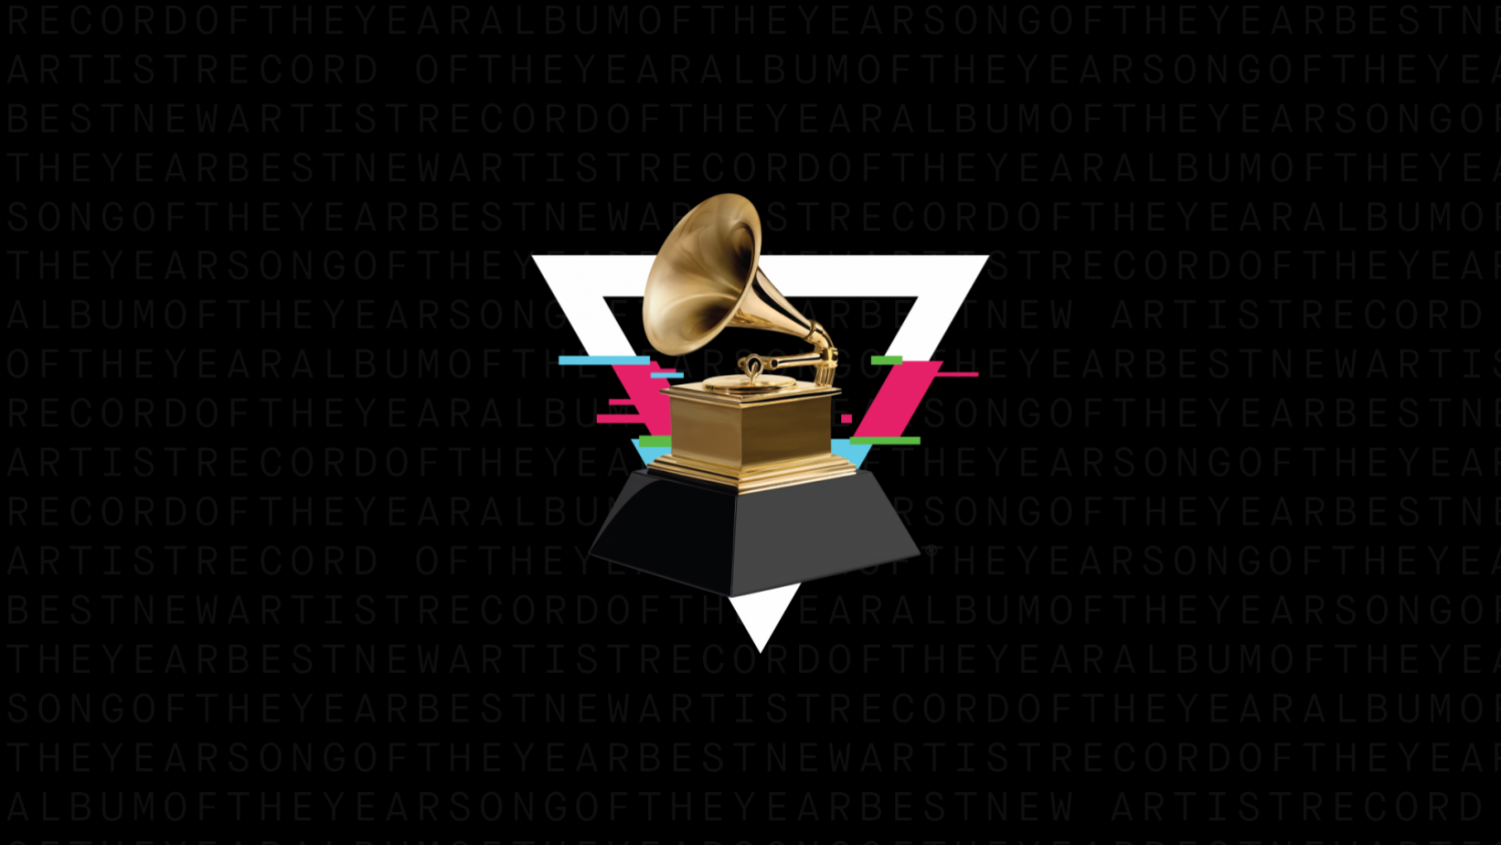 The 2020 Grammy Awards are set to air on Jan. 26 on CBS at 7 p.m.